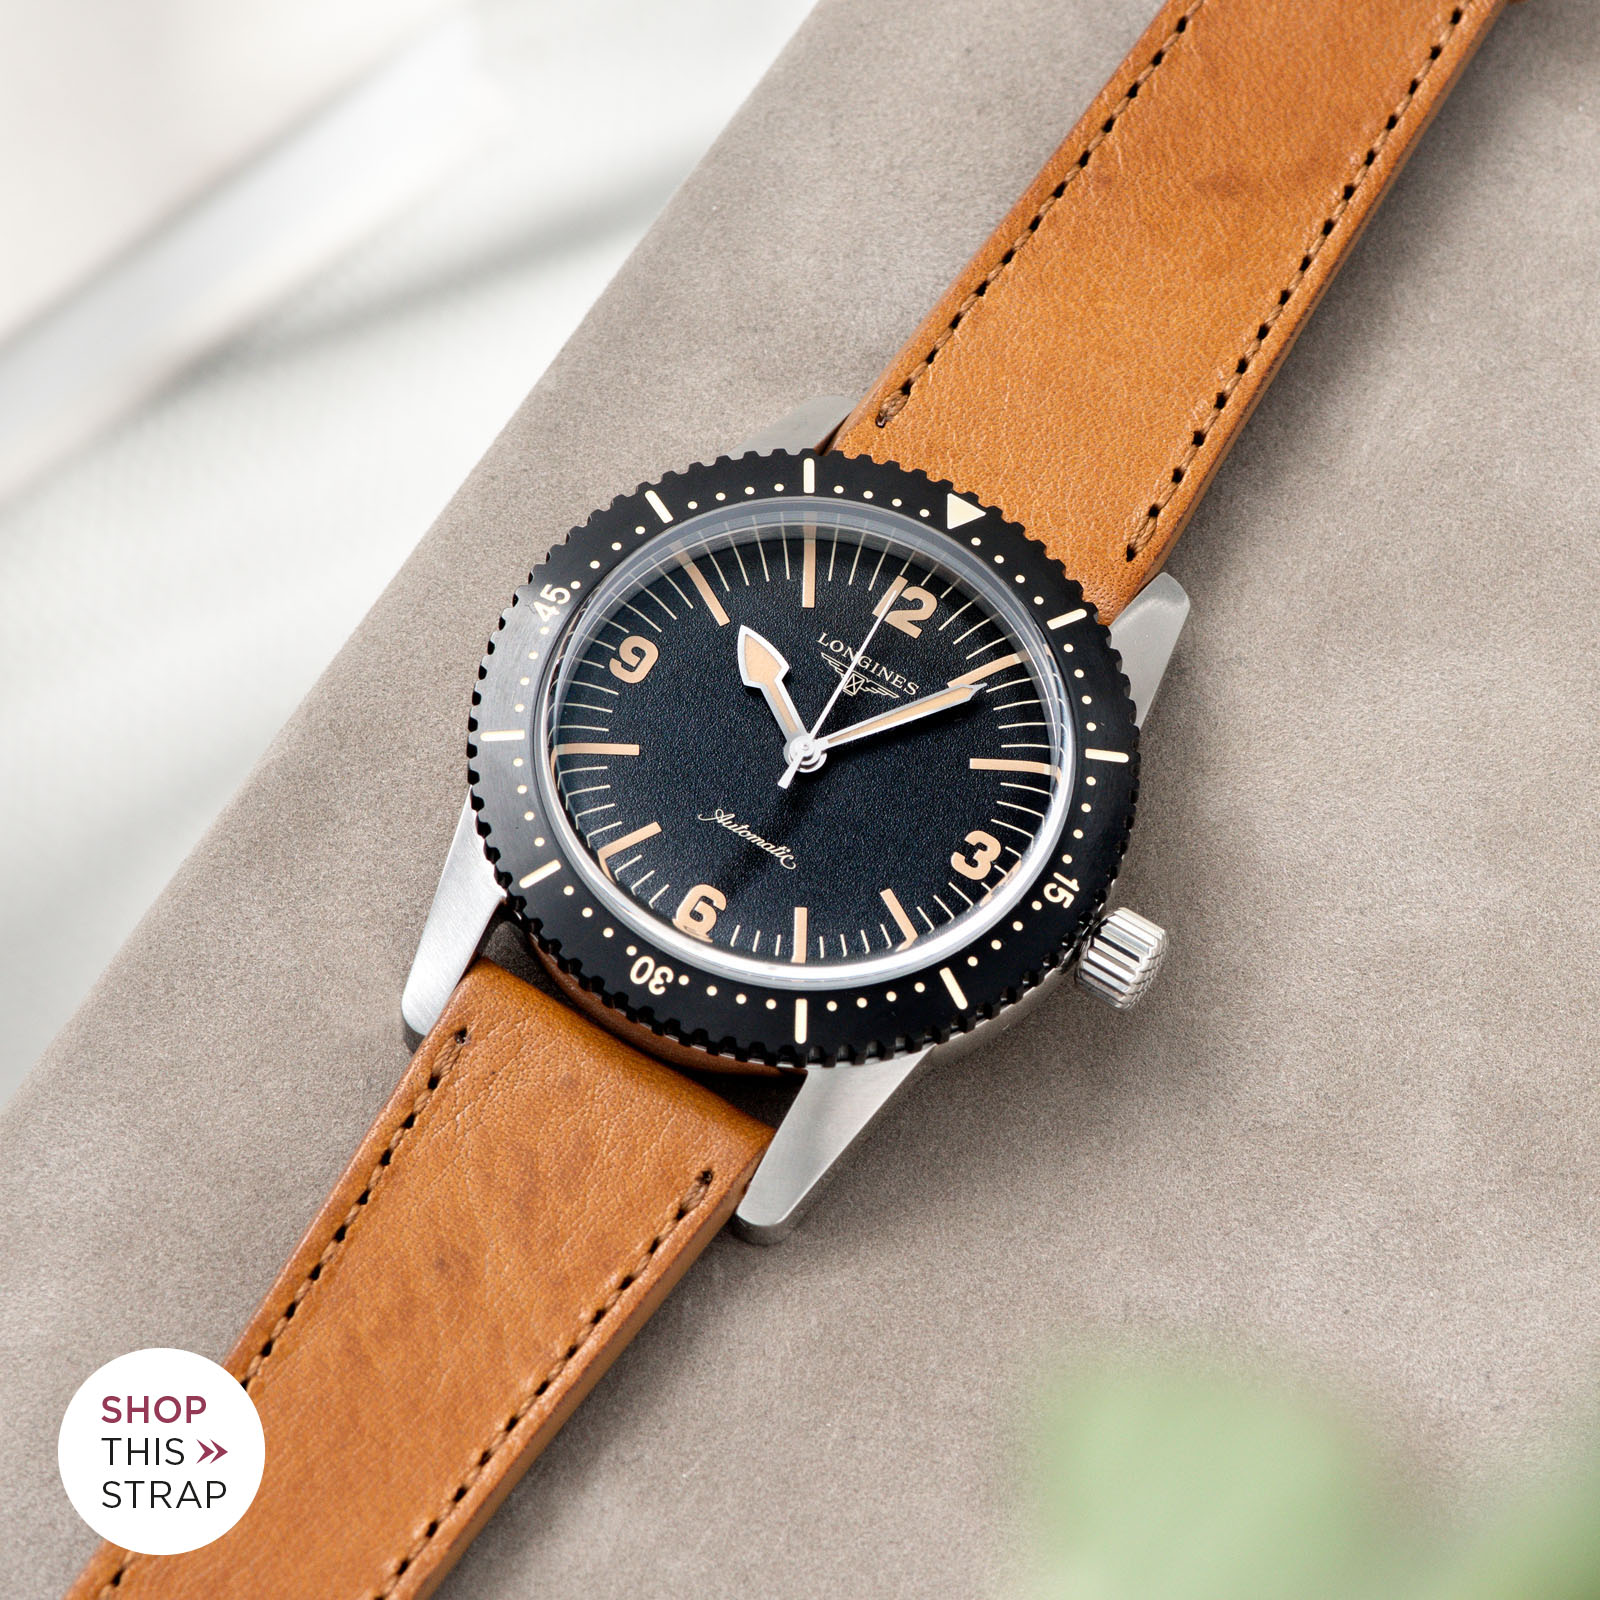 Bulang and Sons_Strap Guide_Longines Skin Diver_Gilt Brown tonal Leather Watch Strap